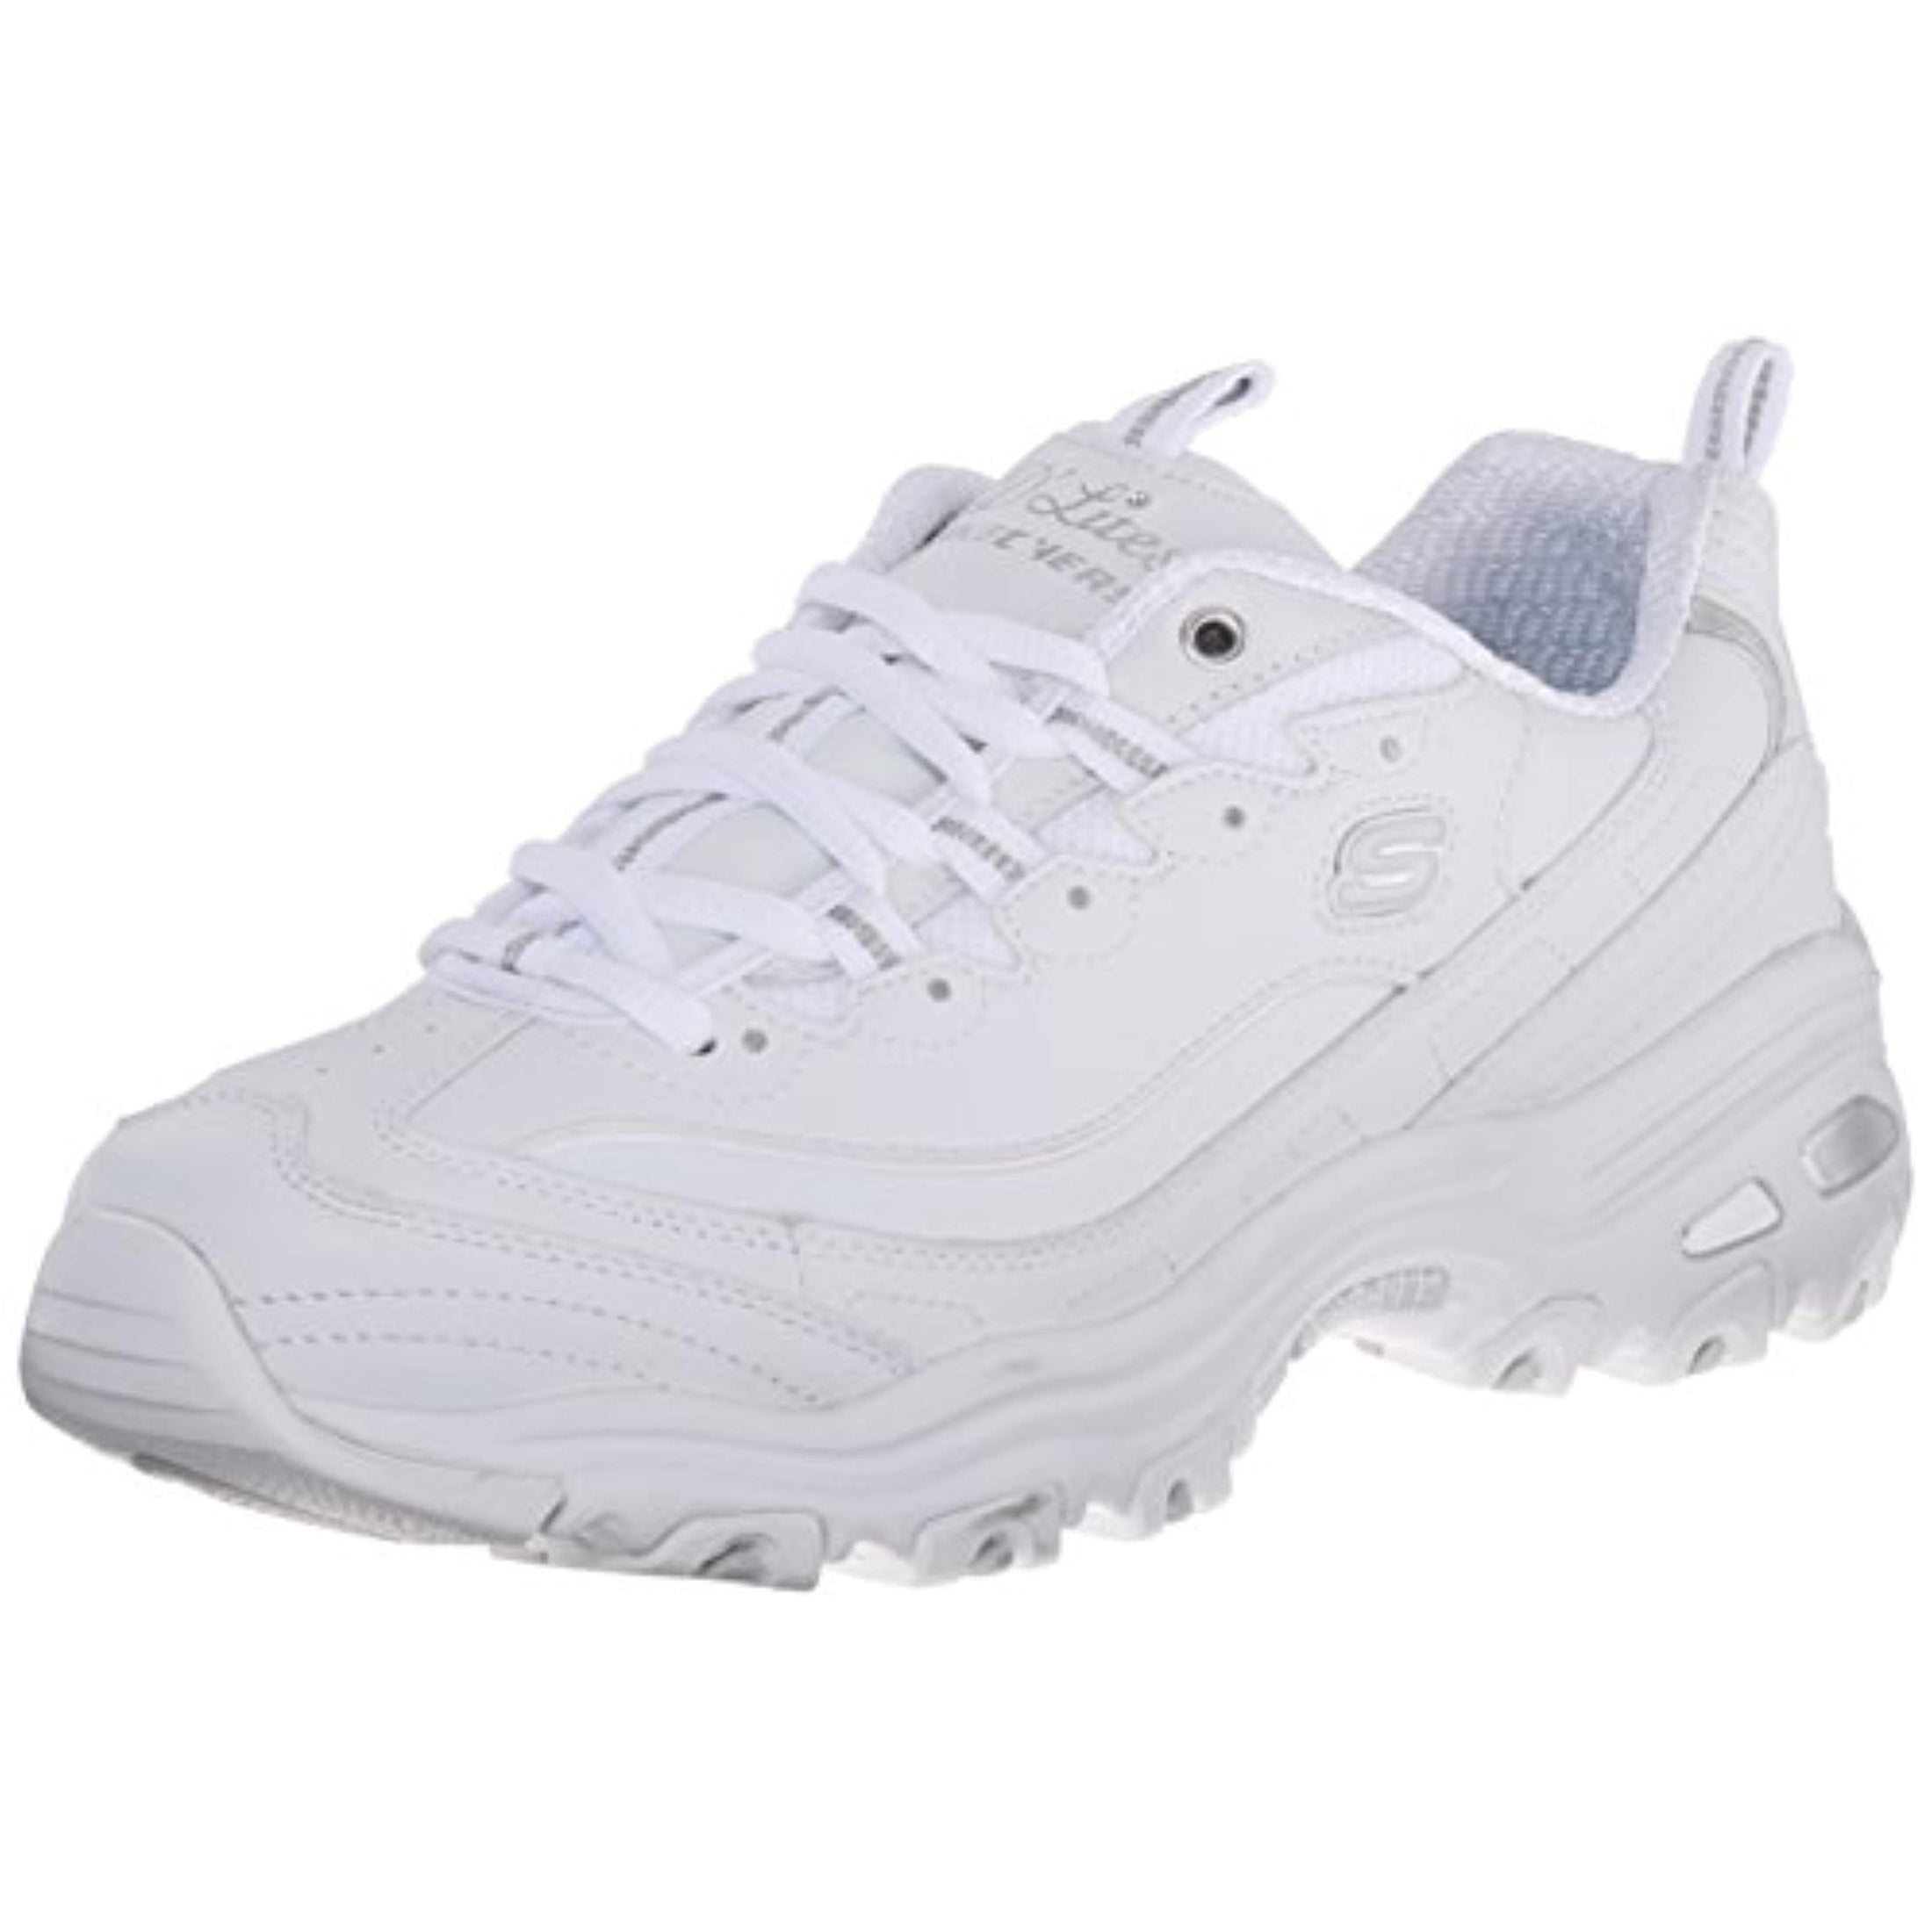 women's athletic shoes with memory foam